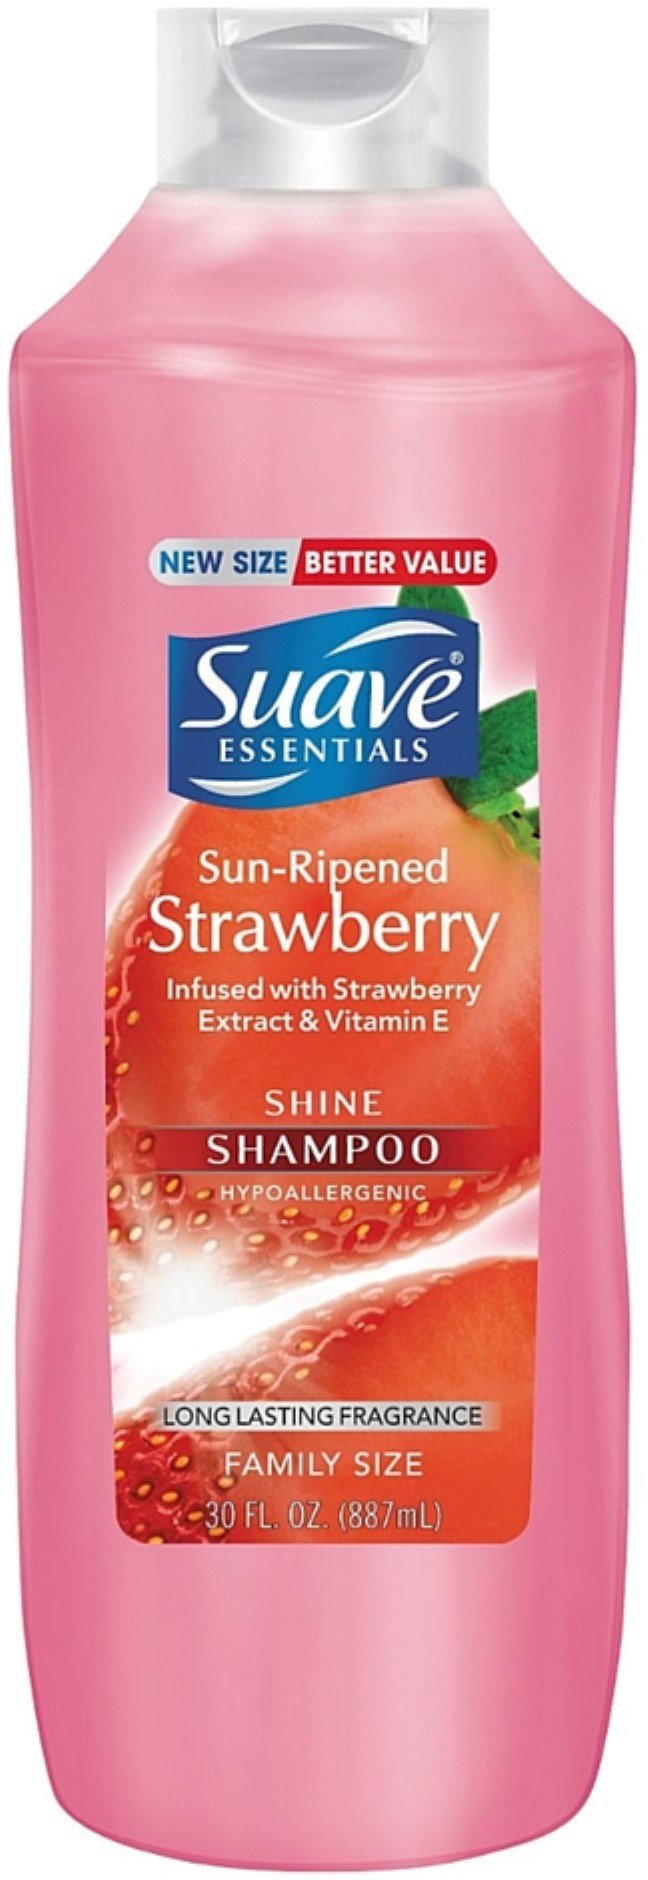 Suave Essentials Shine Shampoo, Sun Ripened Strawberry 30 oz (4 Pack) by Unilever